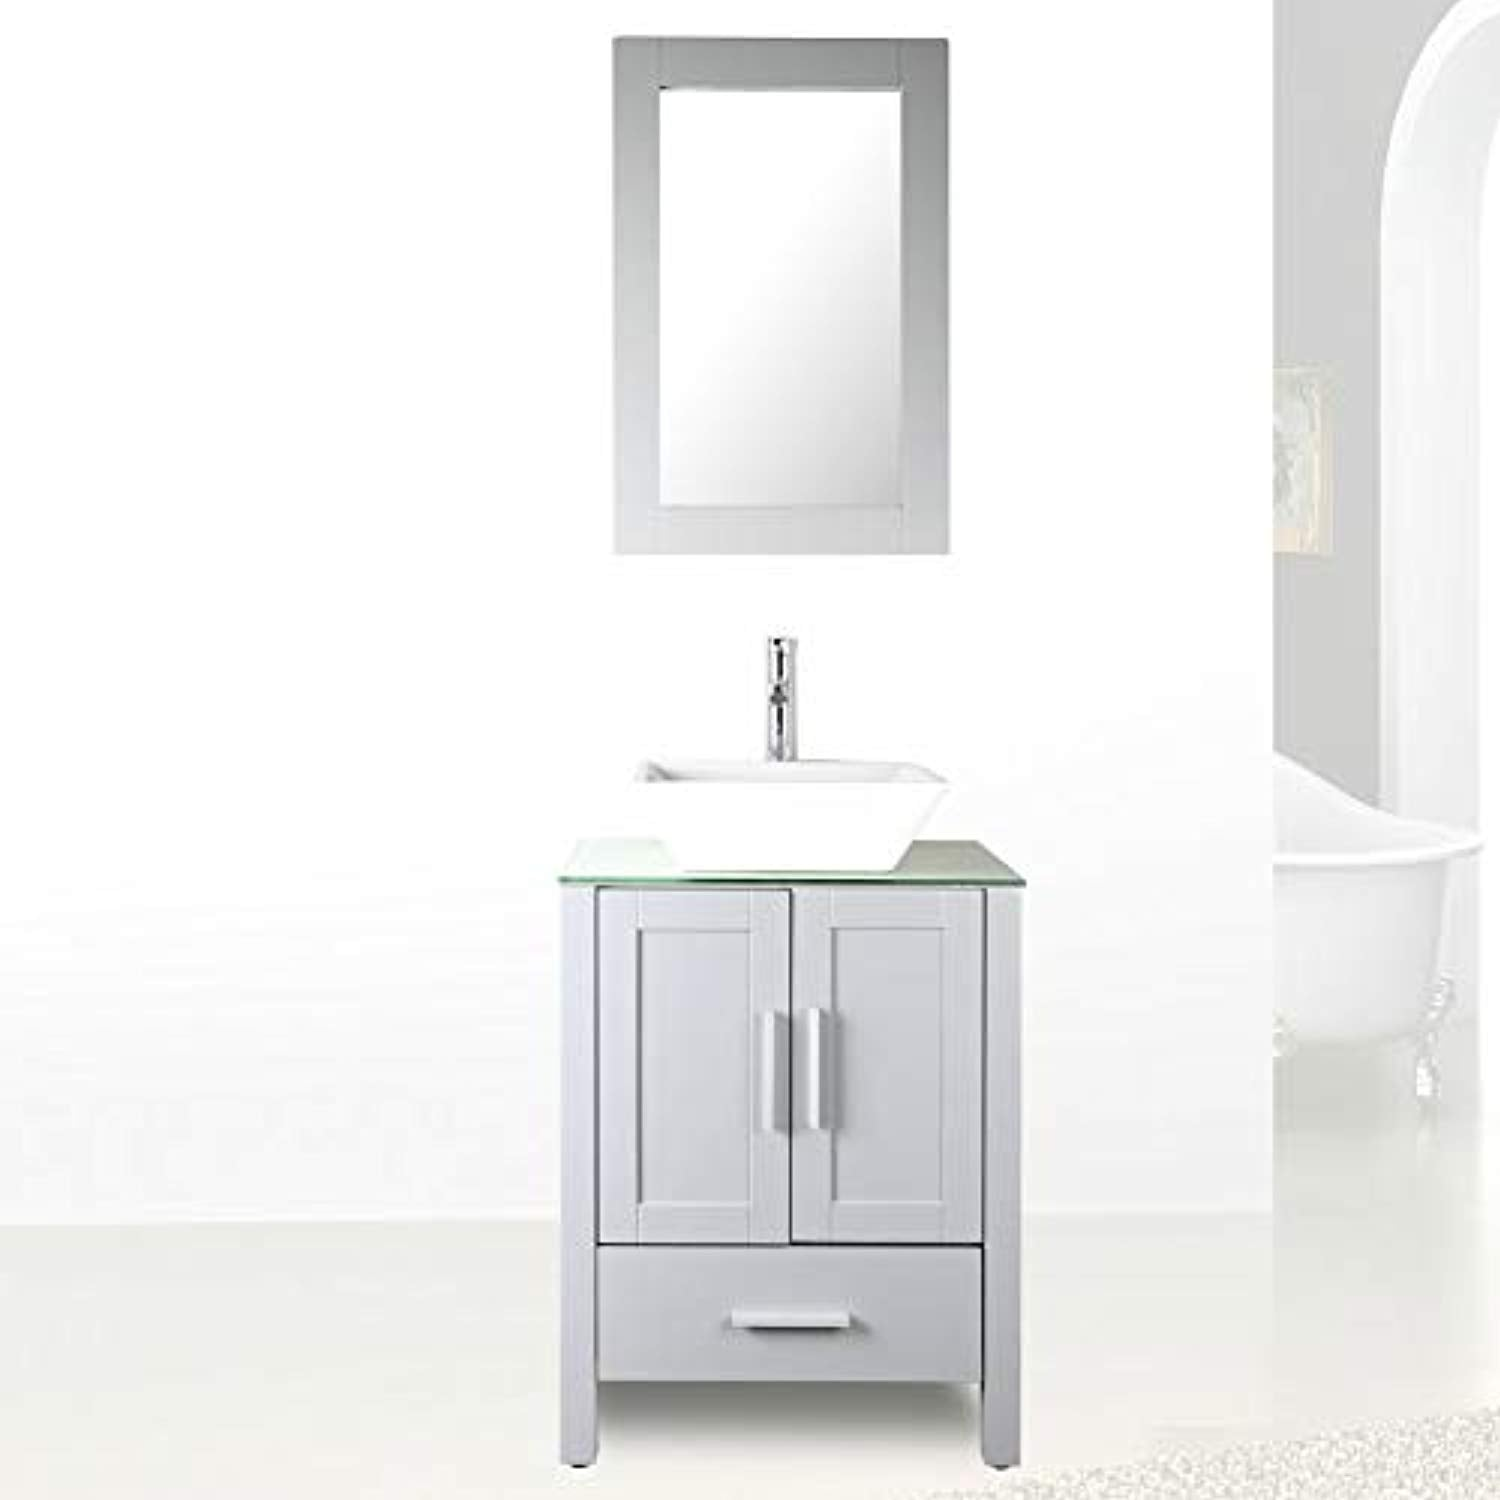 24 Grey Bathroom Vanity Cabinet And Sink Combo Glass Top Mdf Wood W Sink Faucet Drain Set